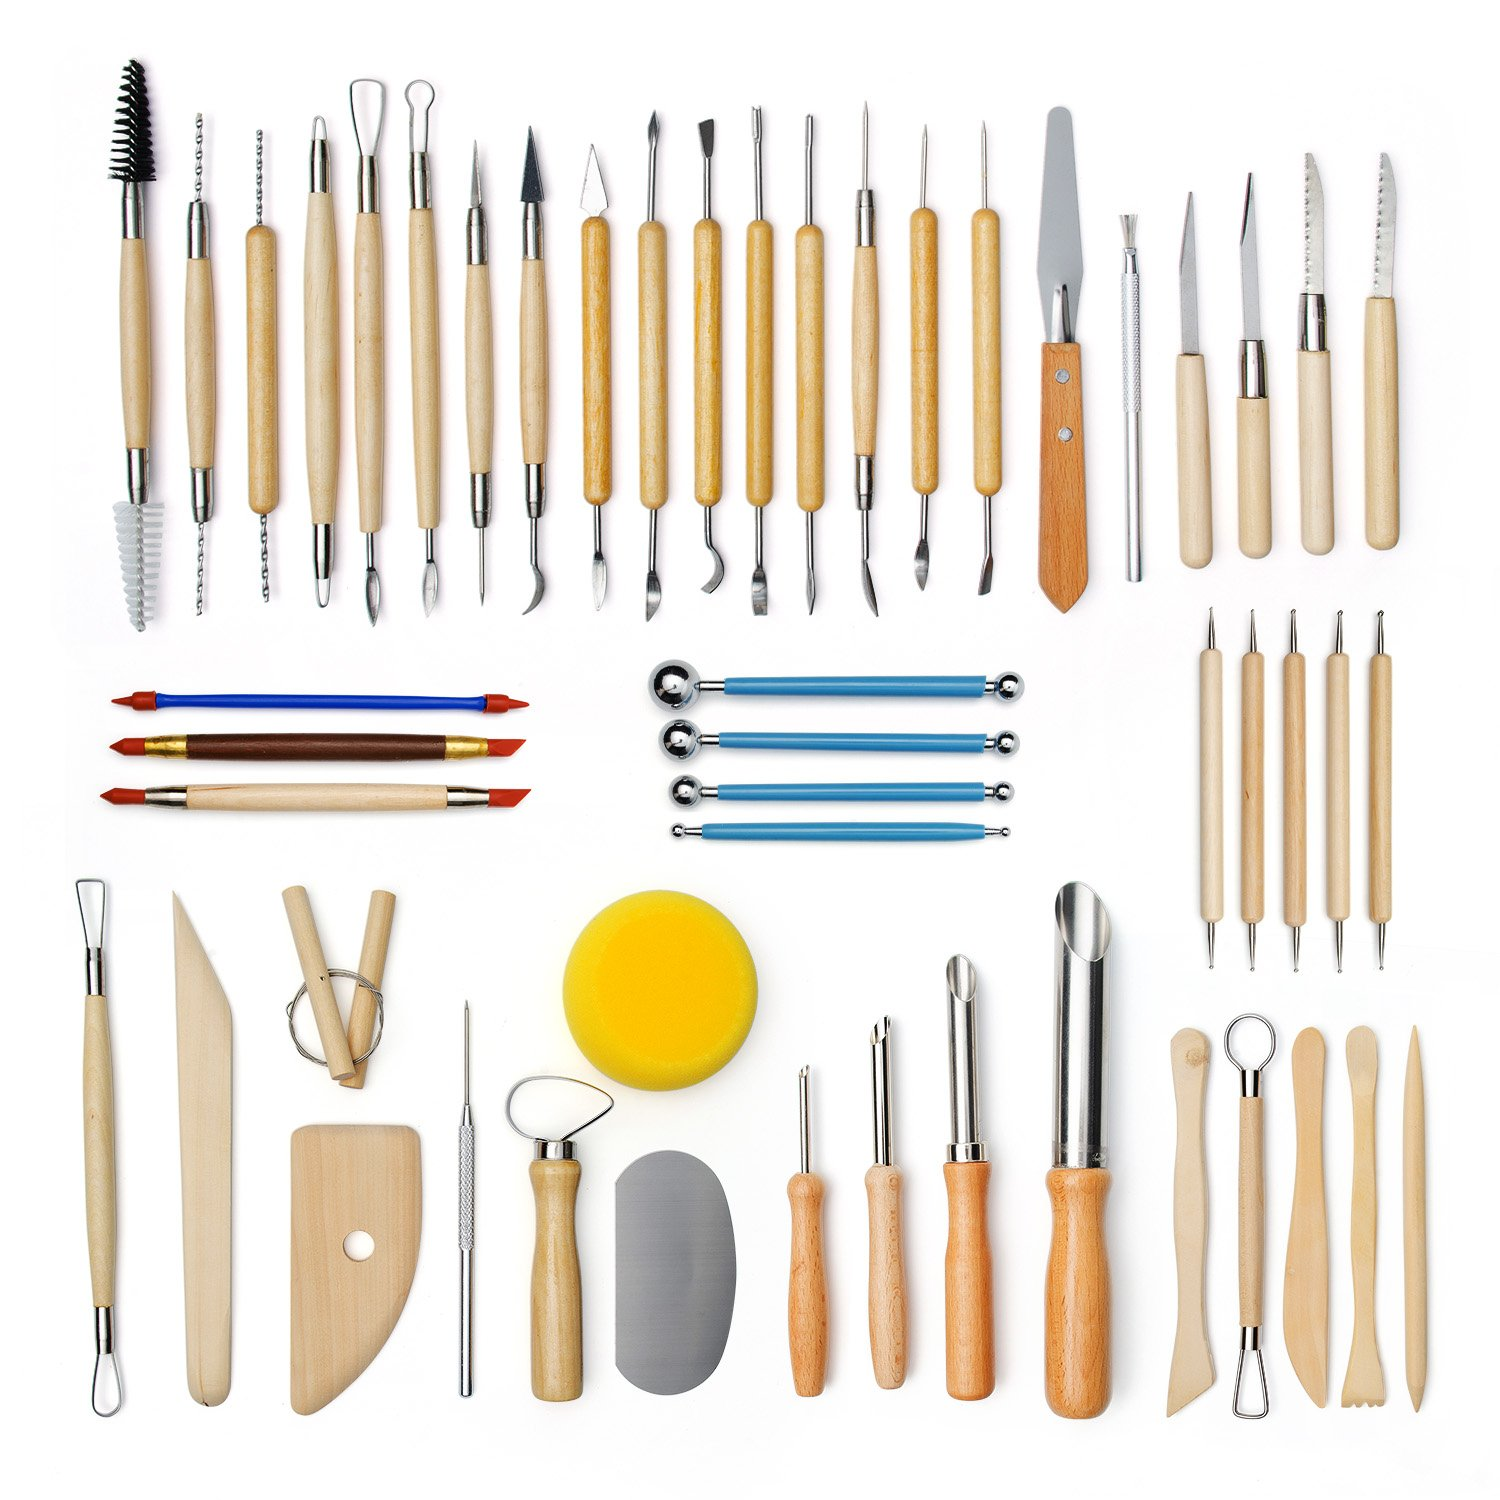 Lighwish 51Pcs/Set Pottery Clay Sculpture Tools Plasticine Carving Tool Set for Brushing Scraping Cleaning Wood and Stainless Steel